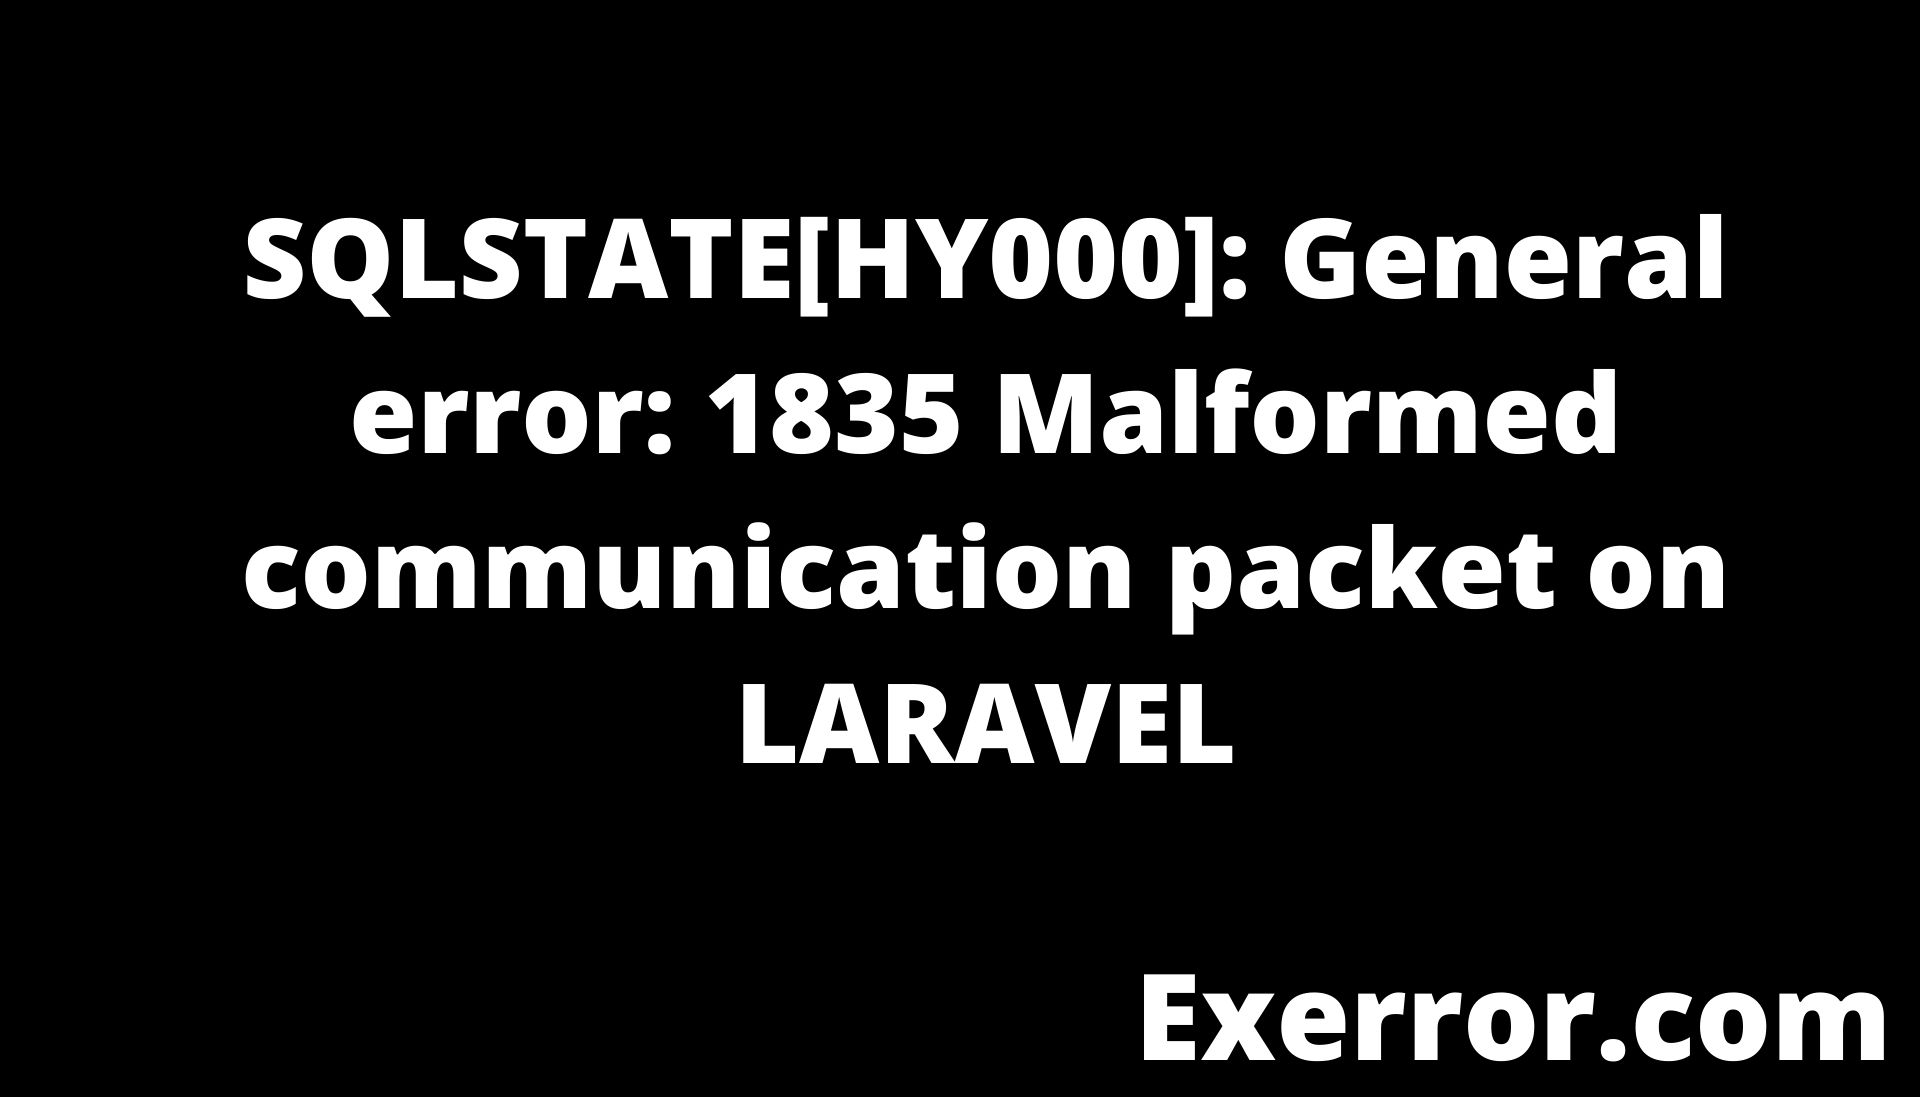 SQLSTATE[HY000] General error 1835 Malformed communication packet on LARAVEL